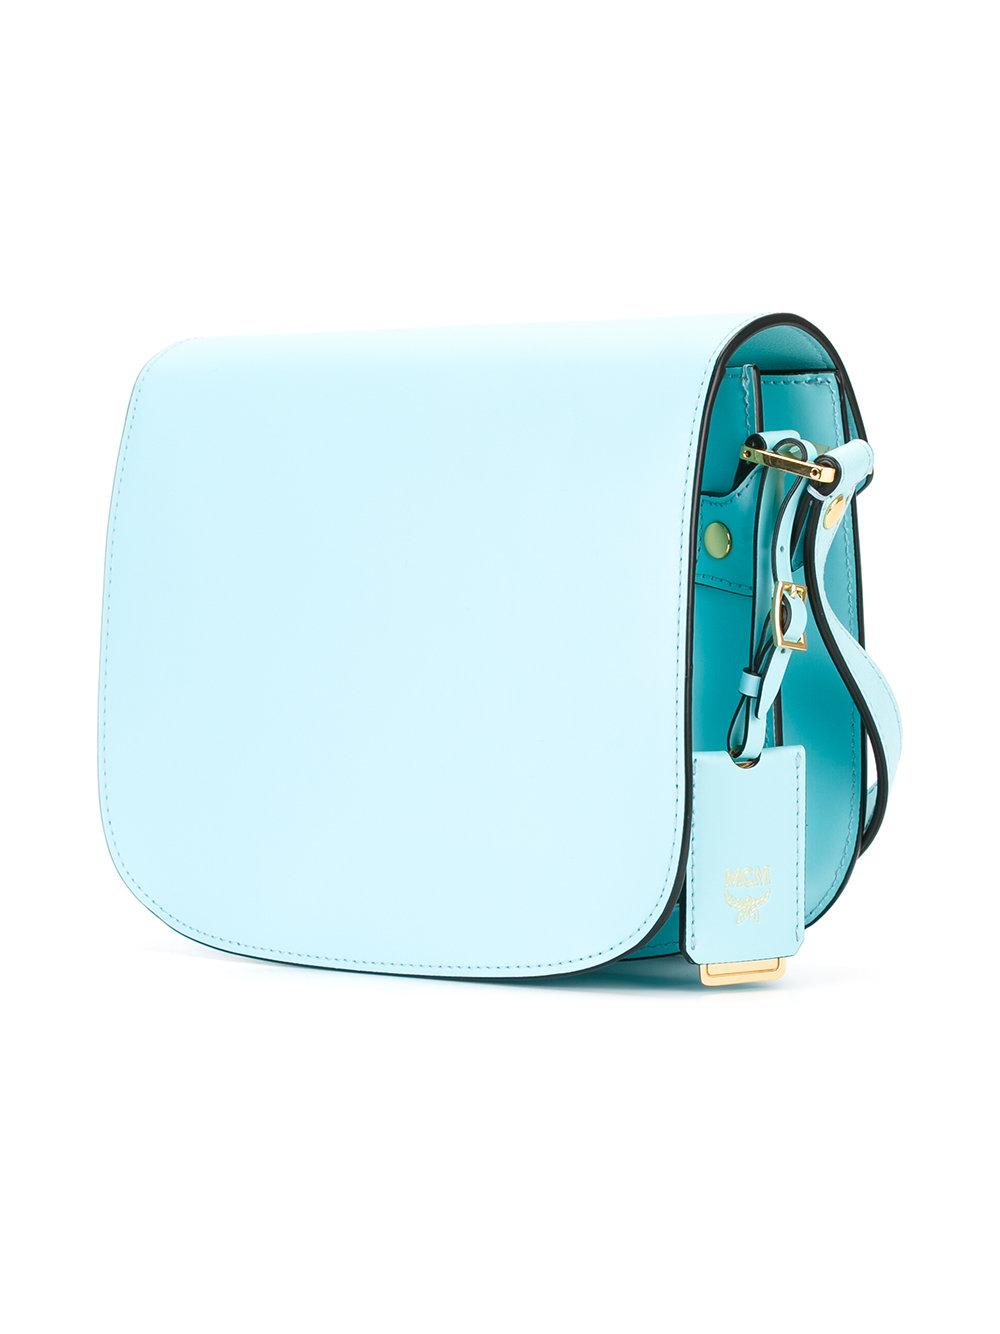 MCM Leather Fold-over Closure Crossbody Bag in Blue